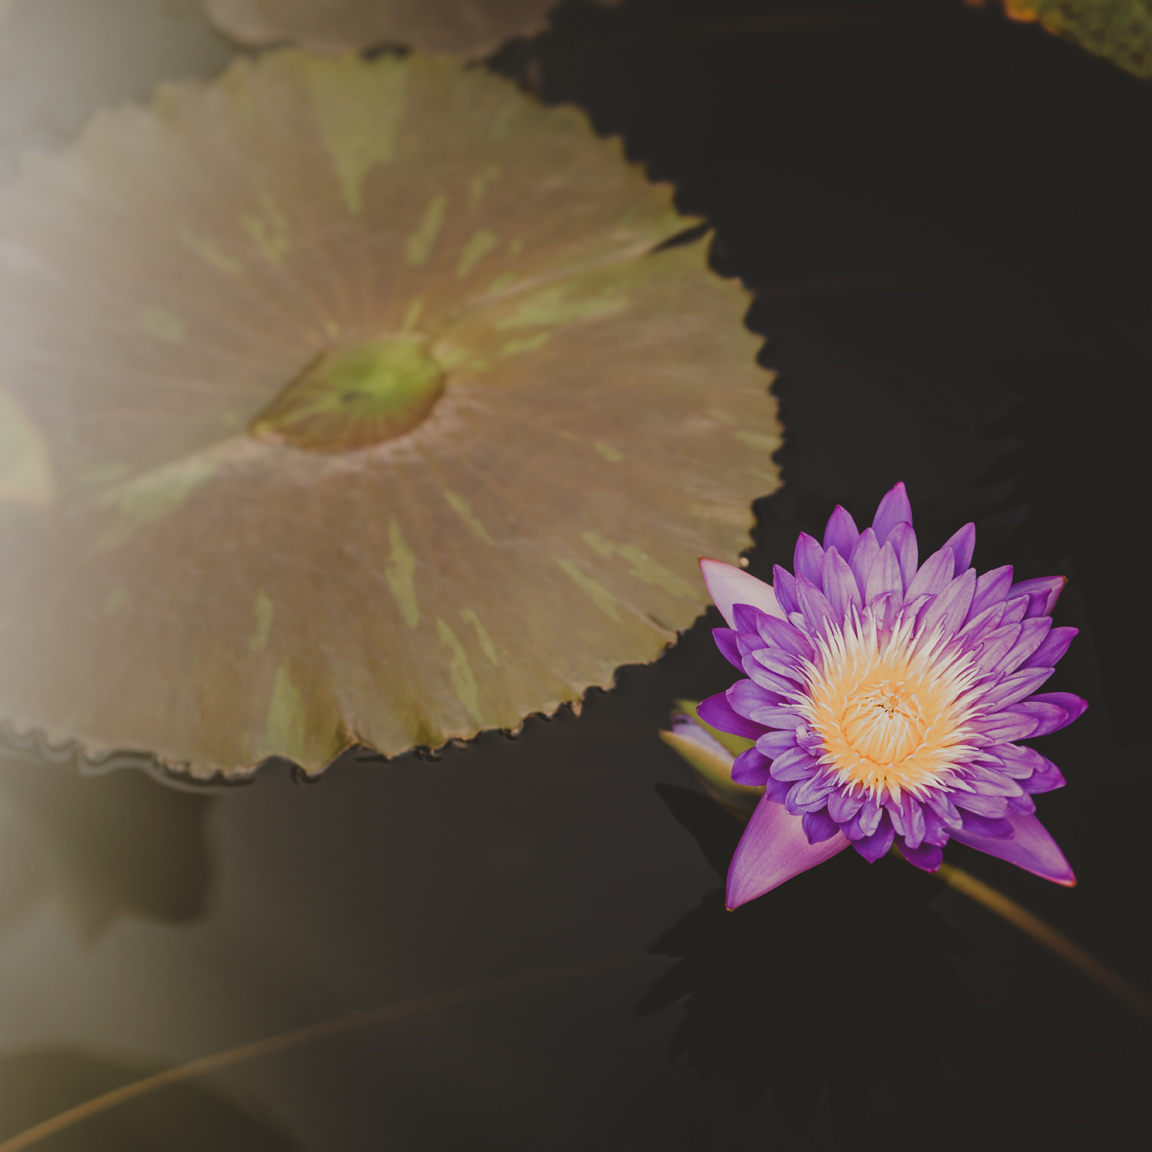 Photograph of a purple and yellow lotus flower next to a dark green lily pad by Tracey Capone.